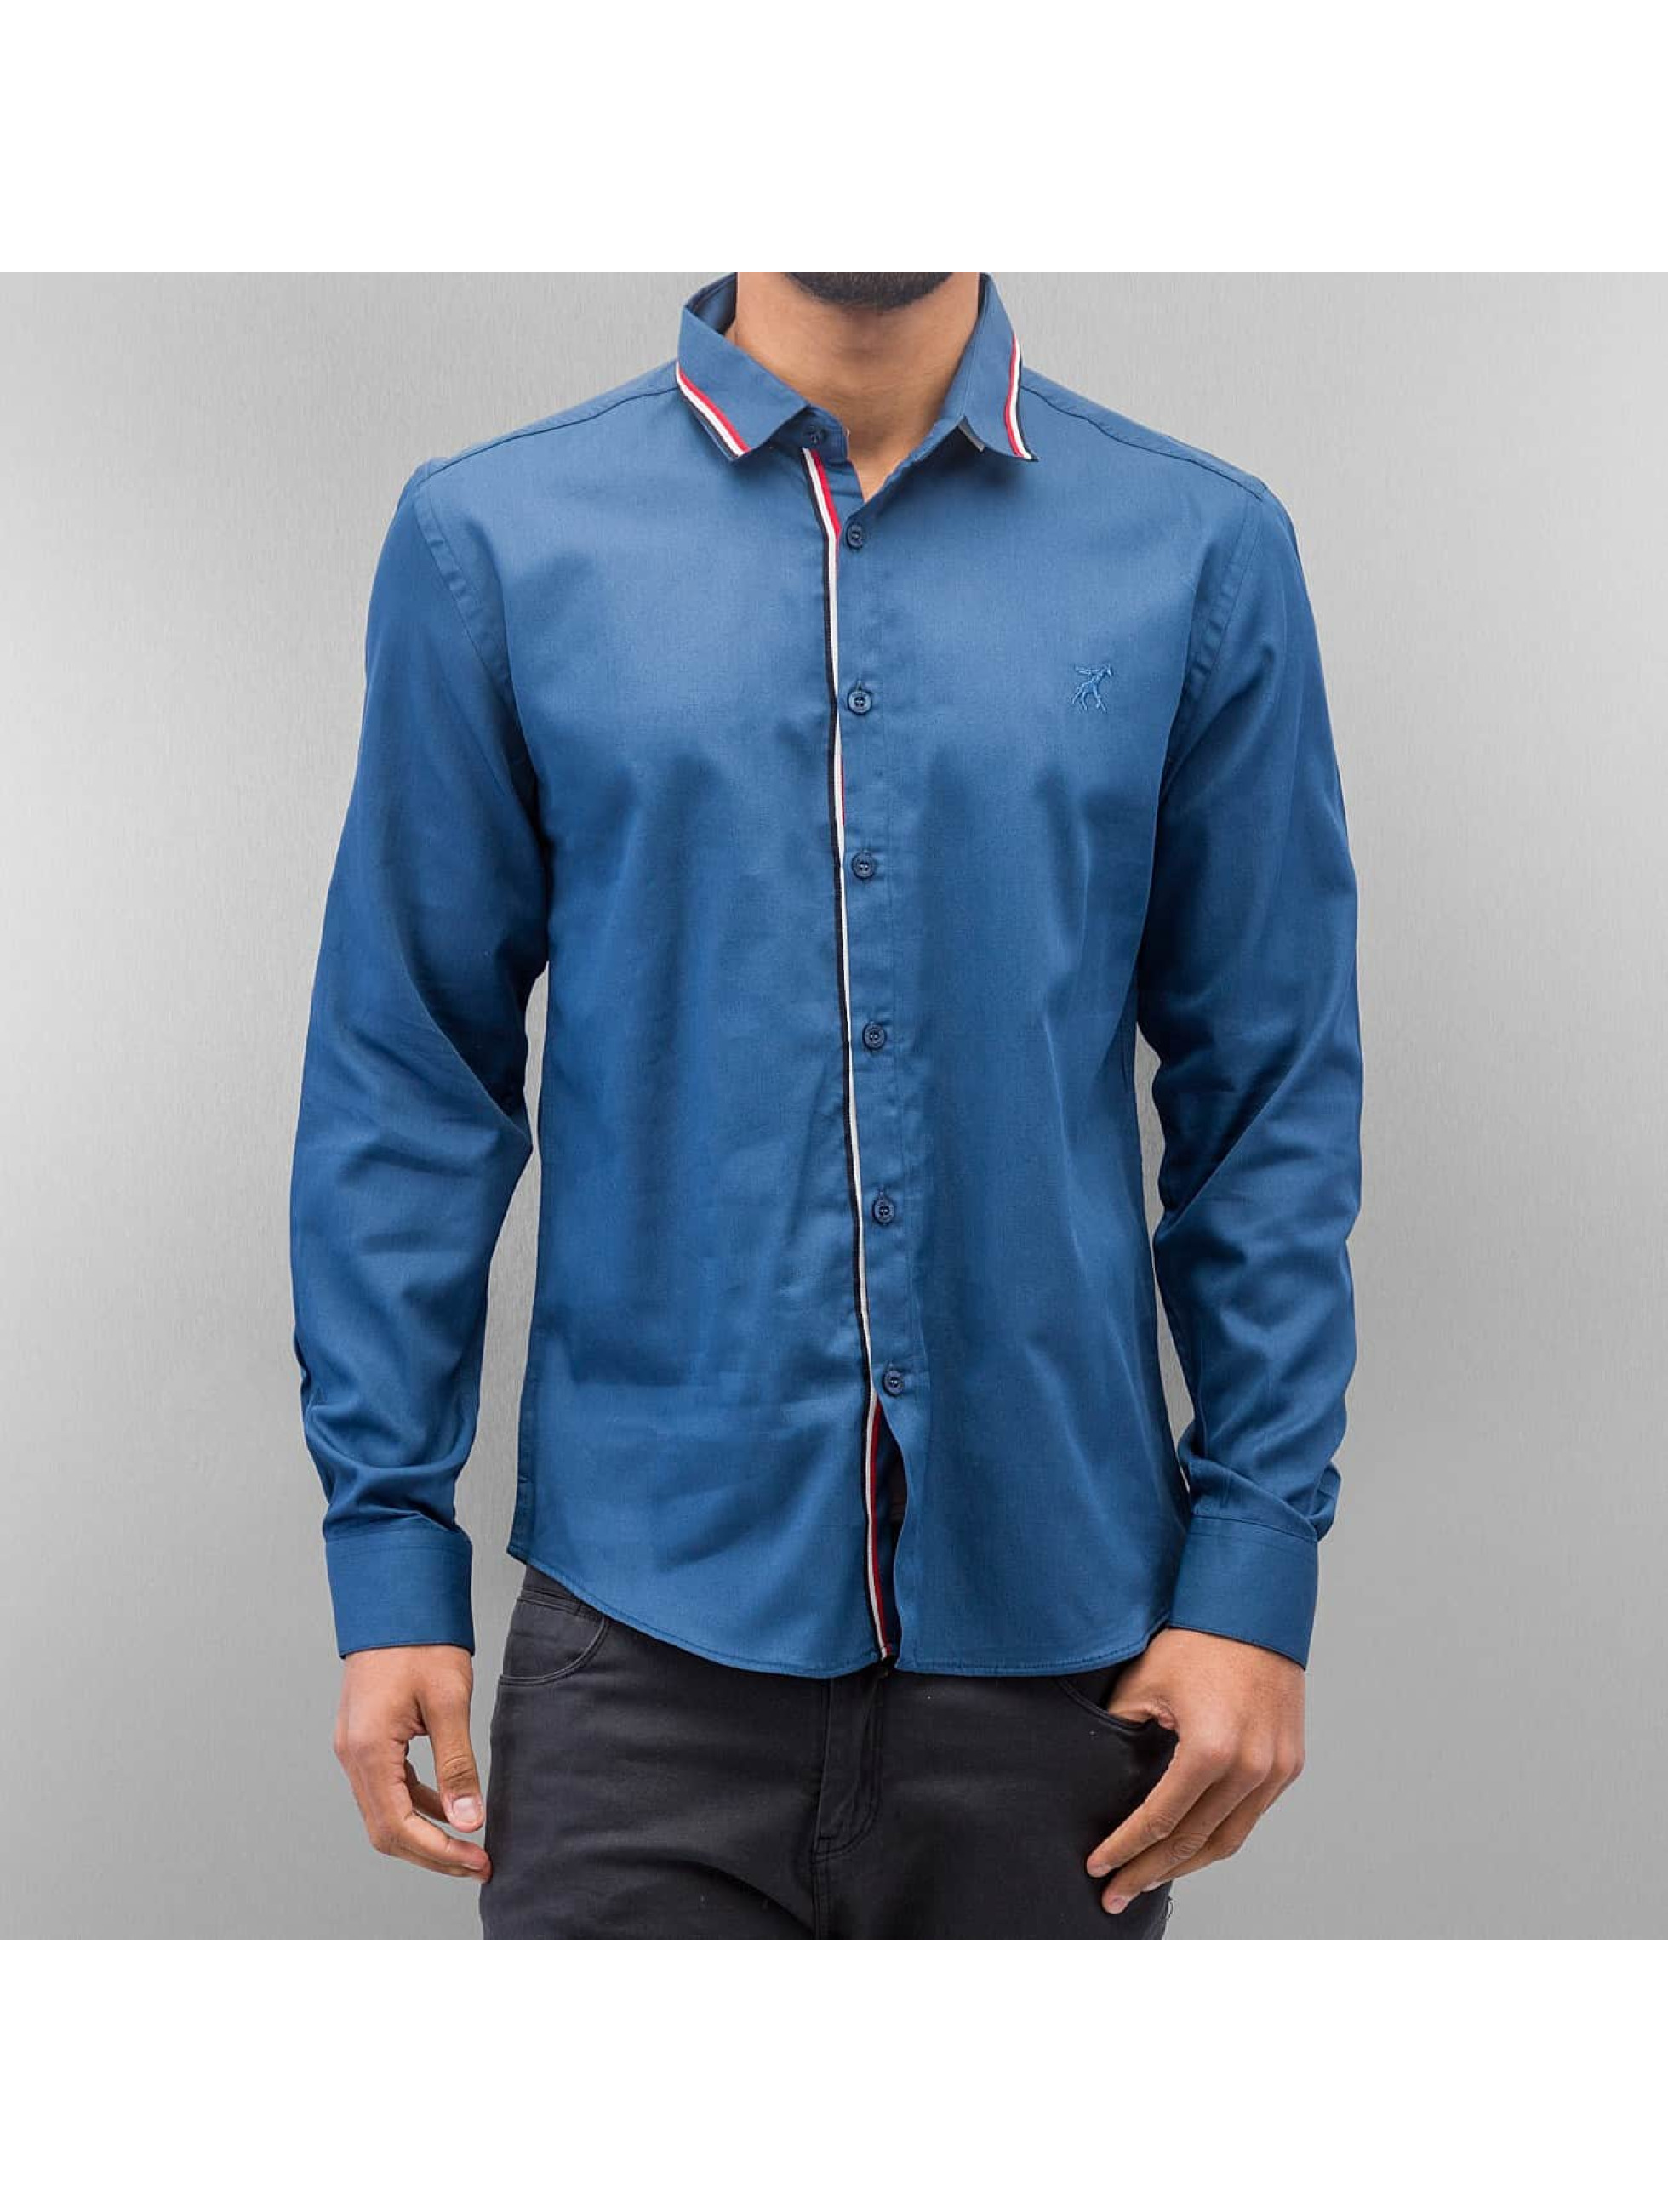 Cazzy Clang / Shirt Renjo in blue XL